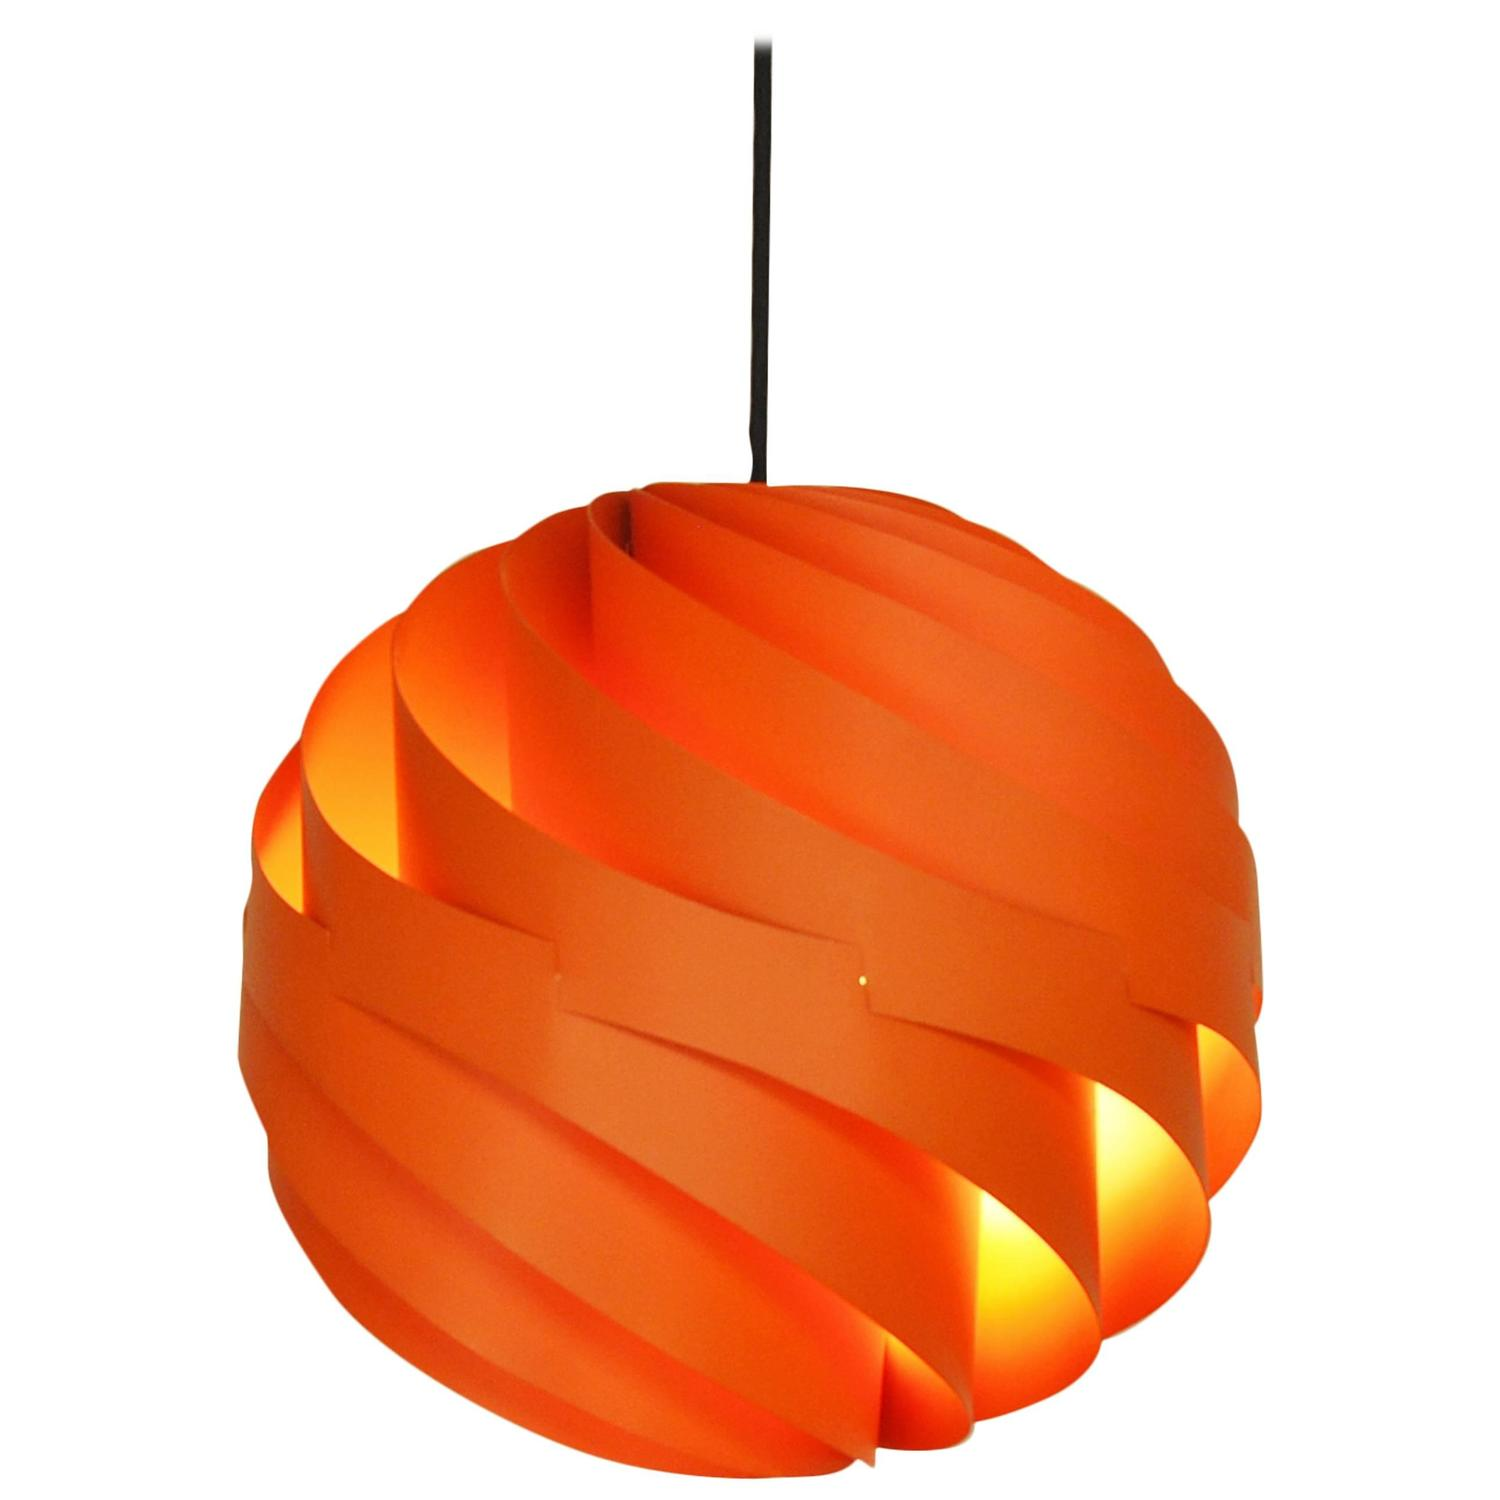 Rare orange turbo hanging pendant by louis weisdorf for lyfa rare orange turbo hanging pendant by louis weisdorf for lyfa denmark 1960s at 1stdibs mozeypictures Images